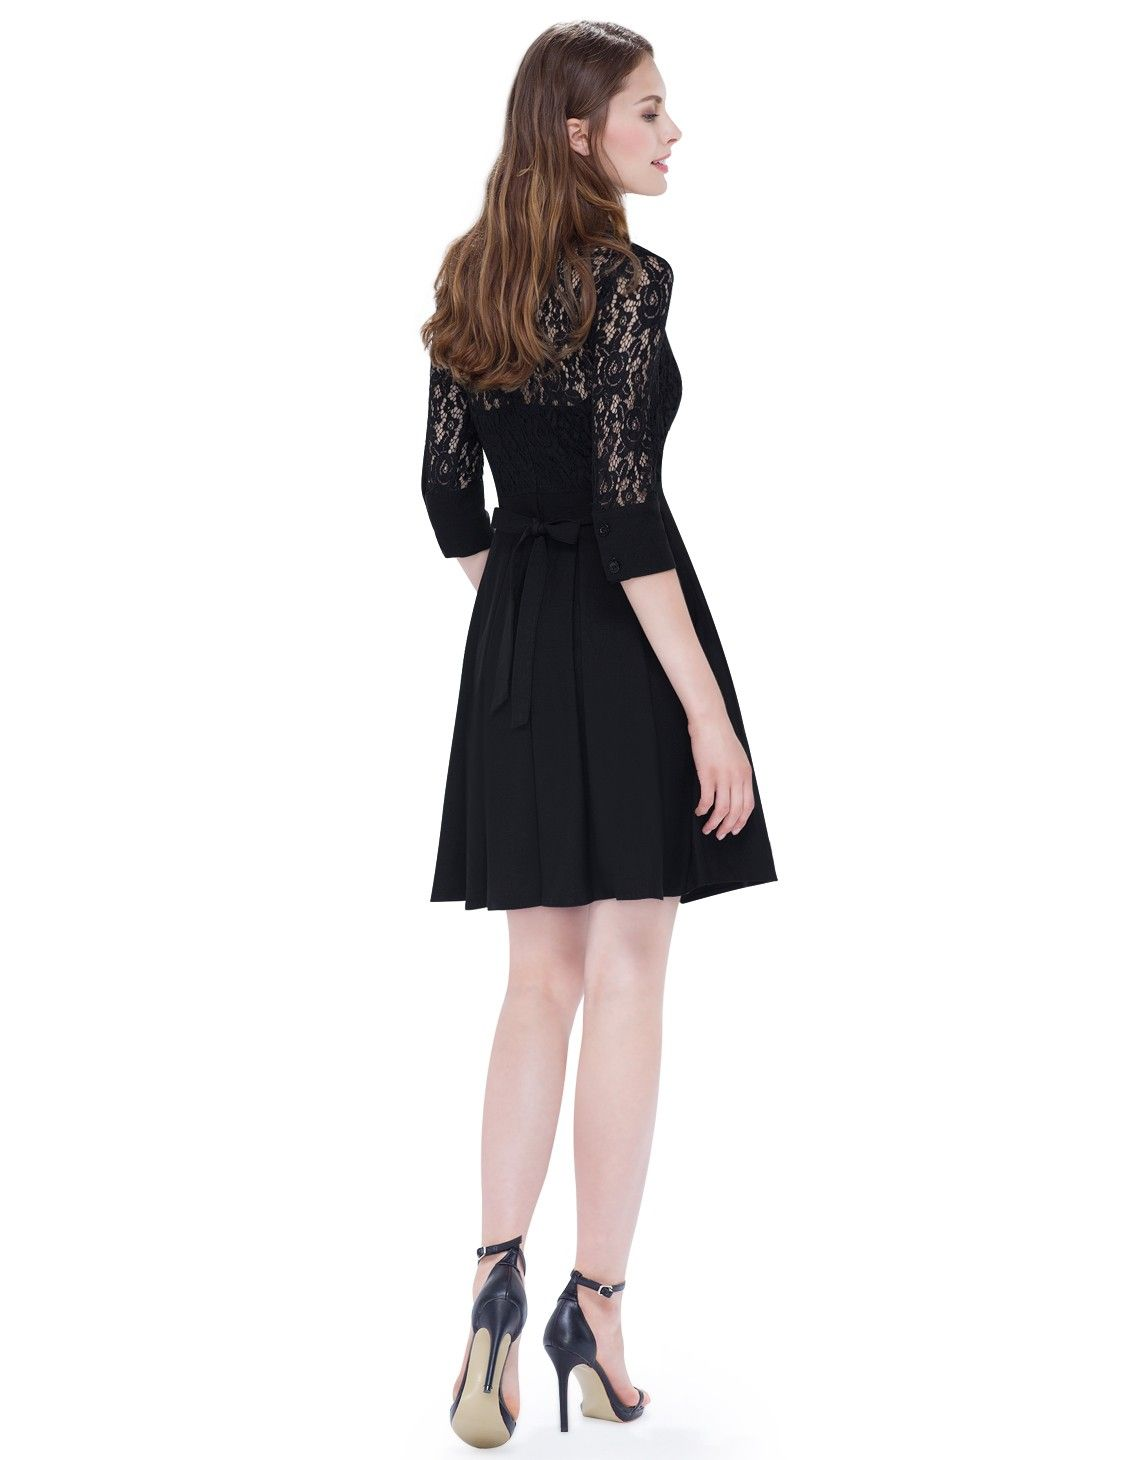 Alisa pan long lace sleeve dress with fit u flare silhouette